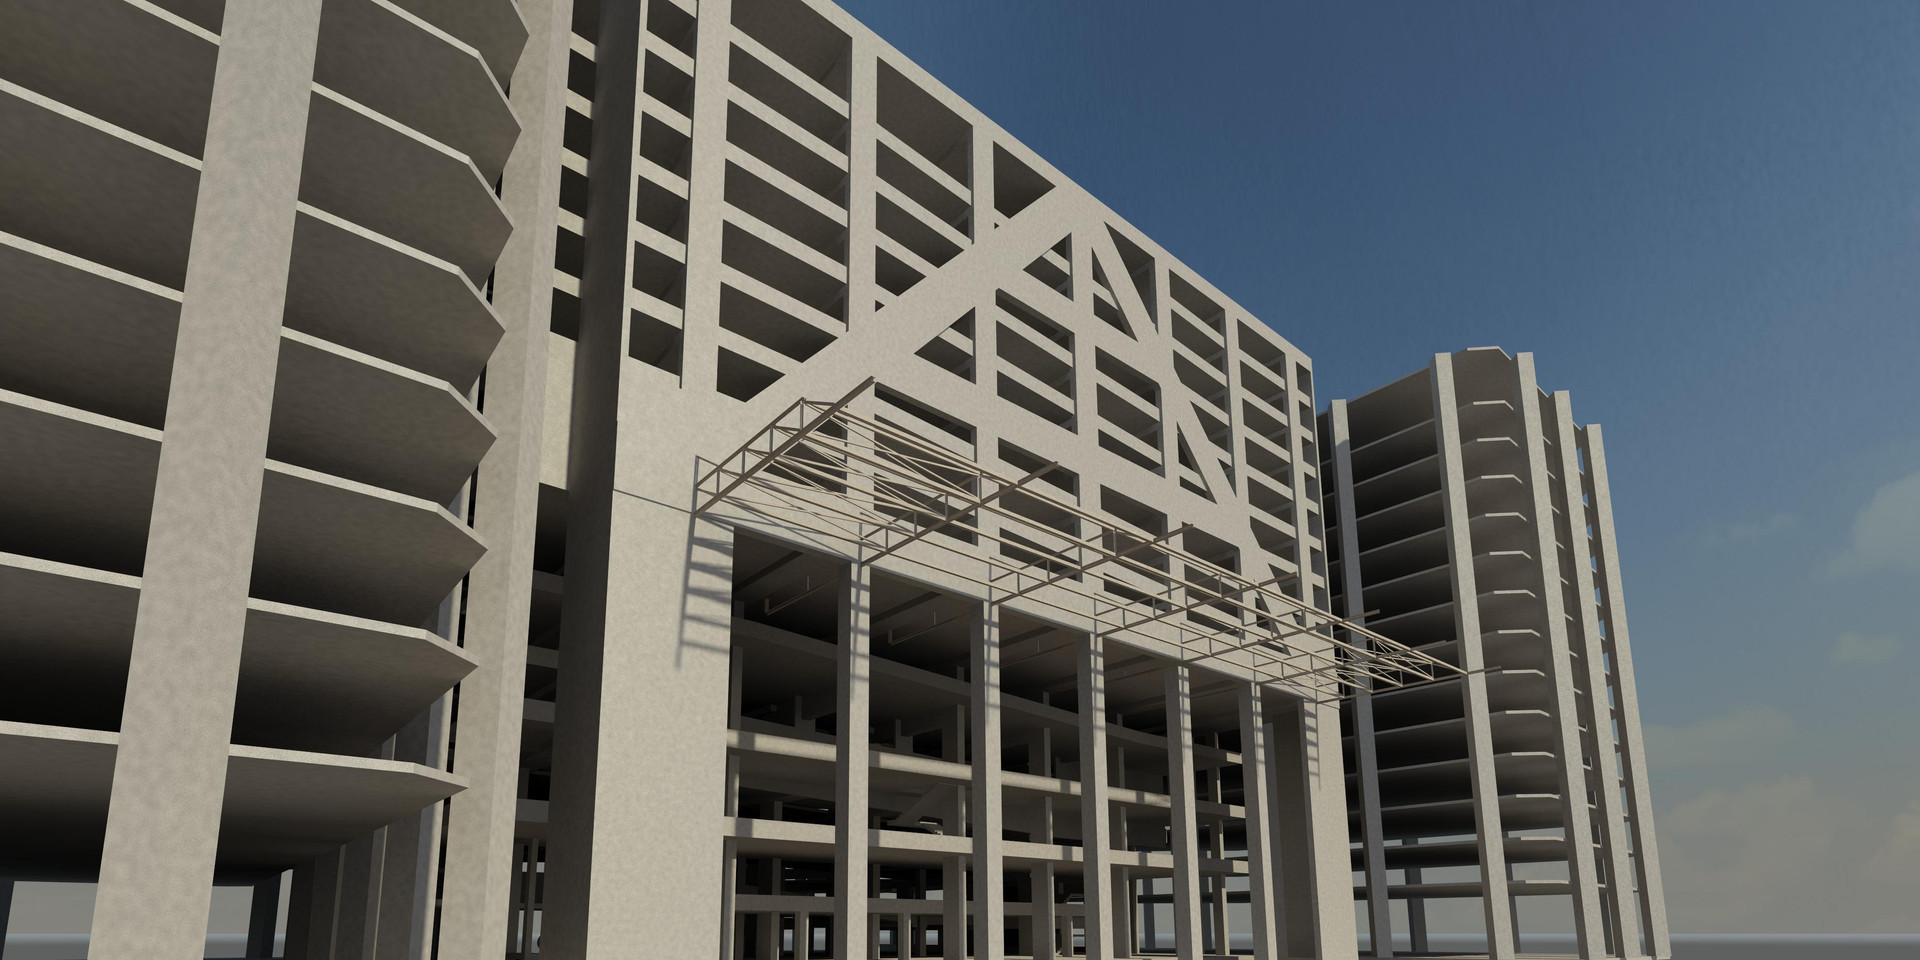 3D Structural Modeling The Towers - Copy